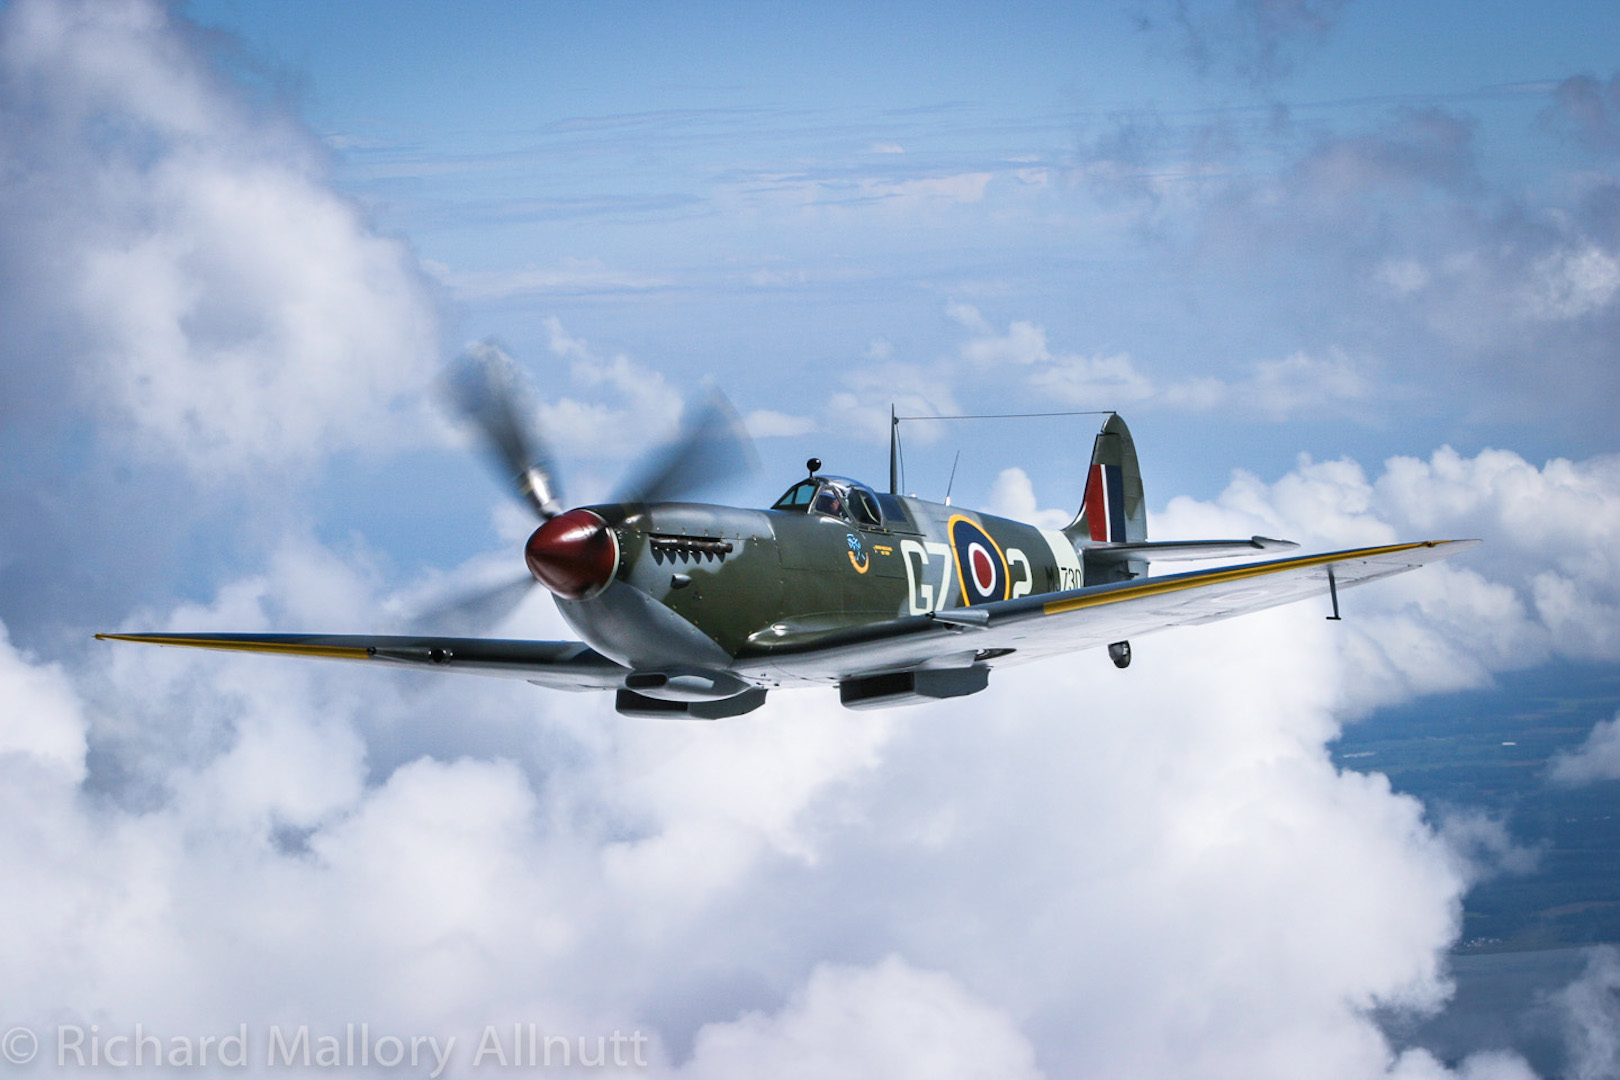 The Military Aviation Museum's Spitfire Mk IXe will be one of the special guest of the event. Image by Richard Mallory Allnutt.